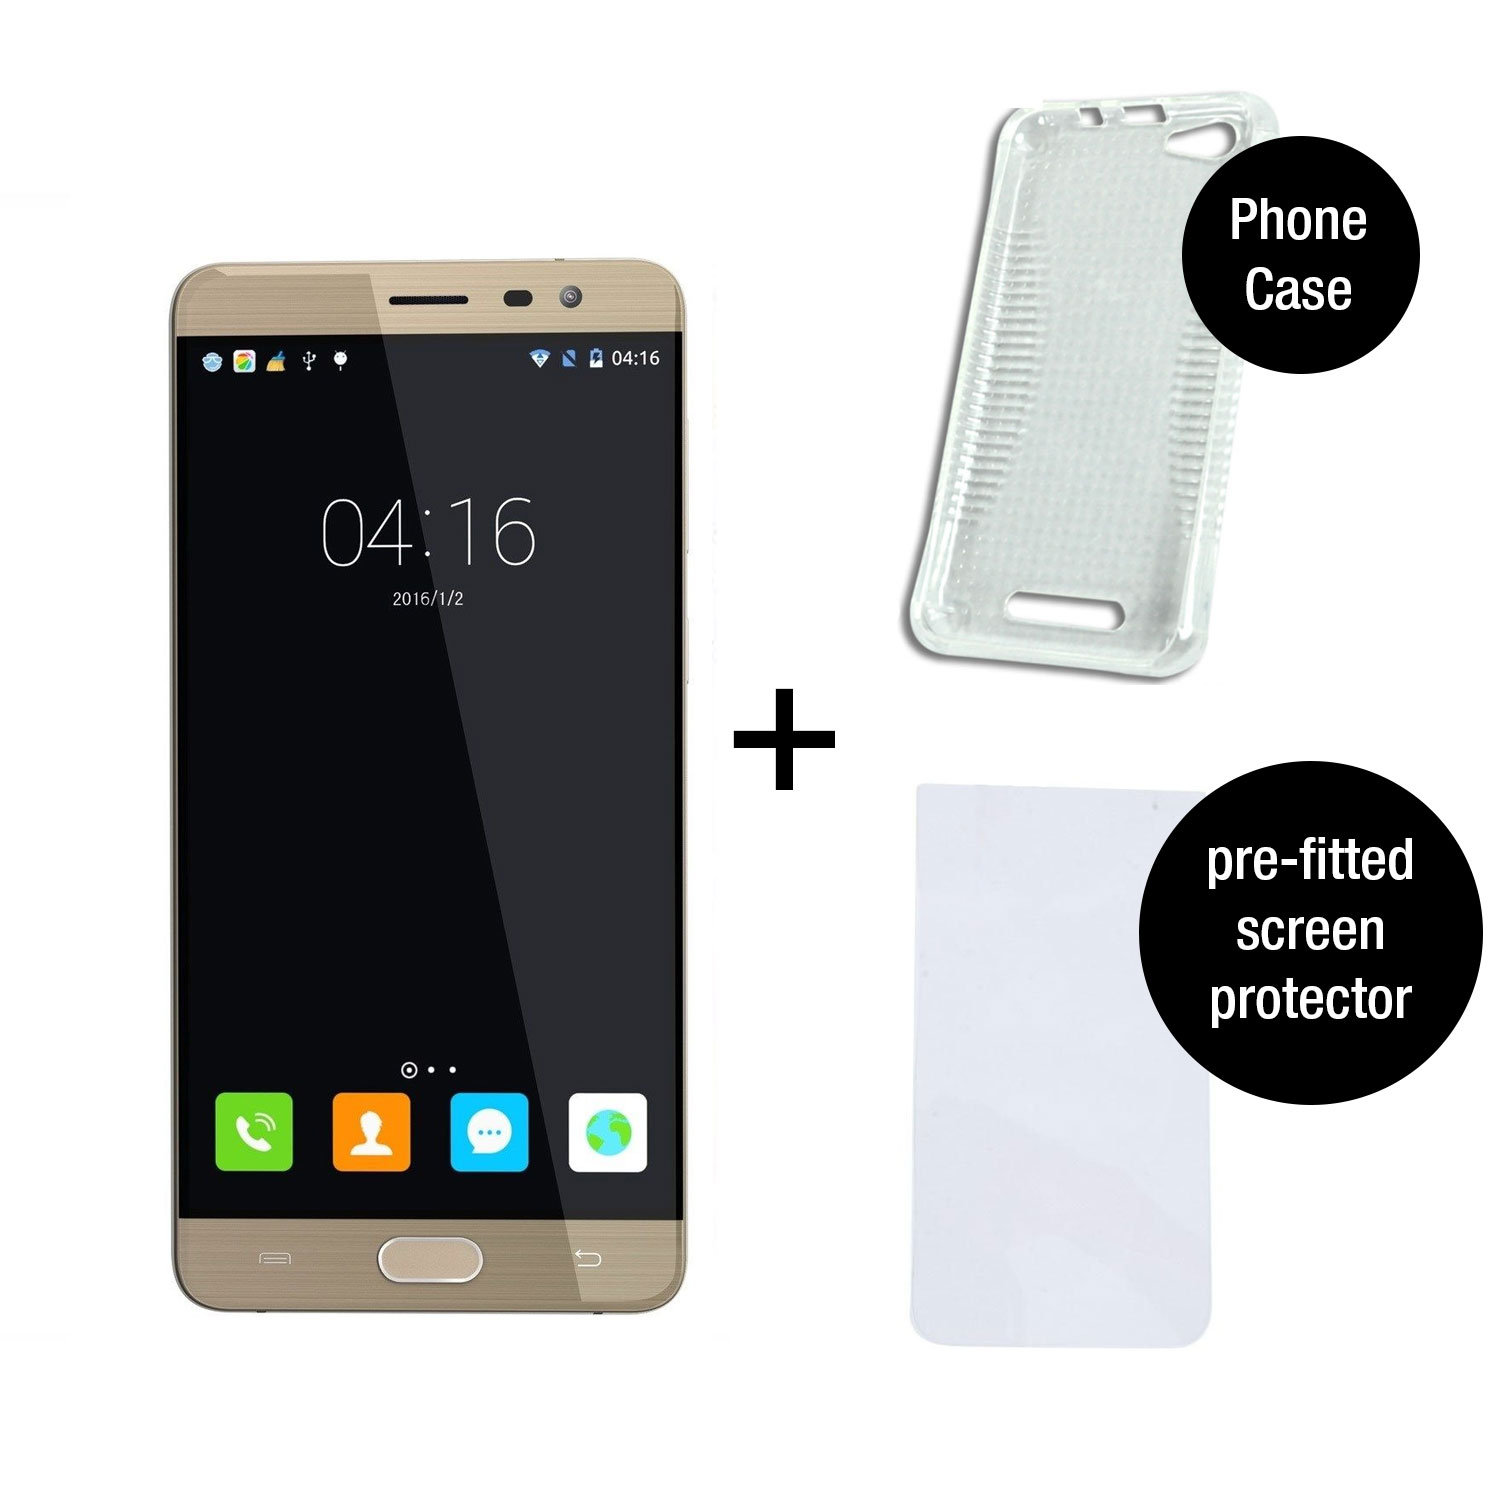 Core android 4 1 mobile phone smartphone unlocked touch white ebay - Cubot Cheetah 2 Gold 5 5